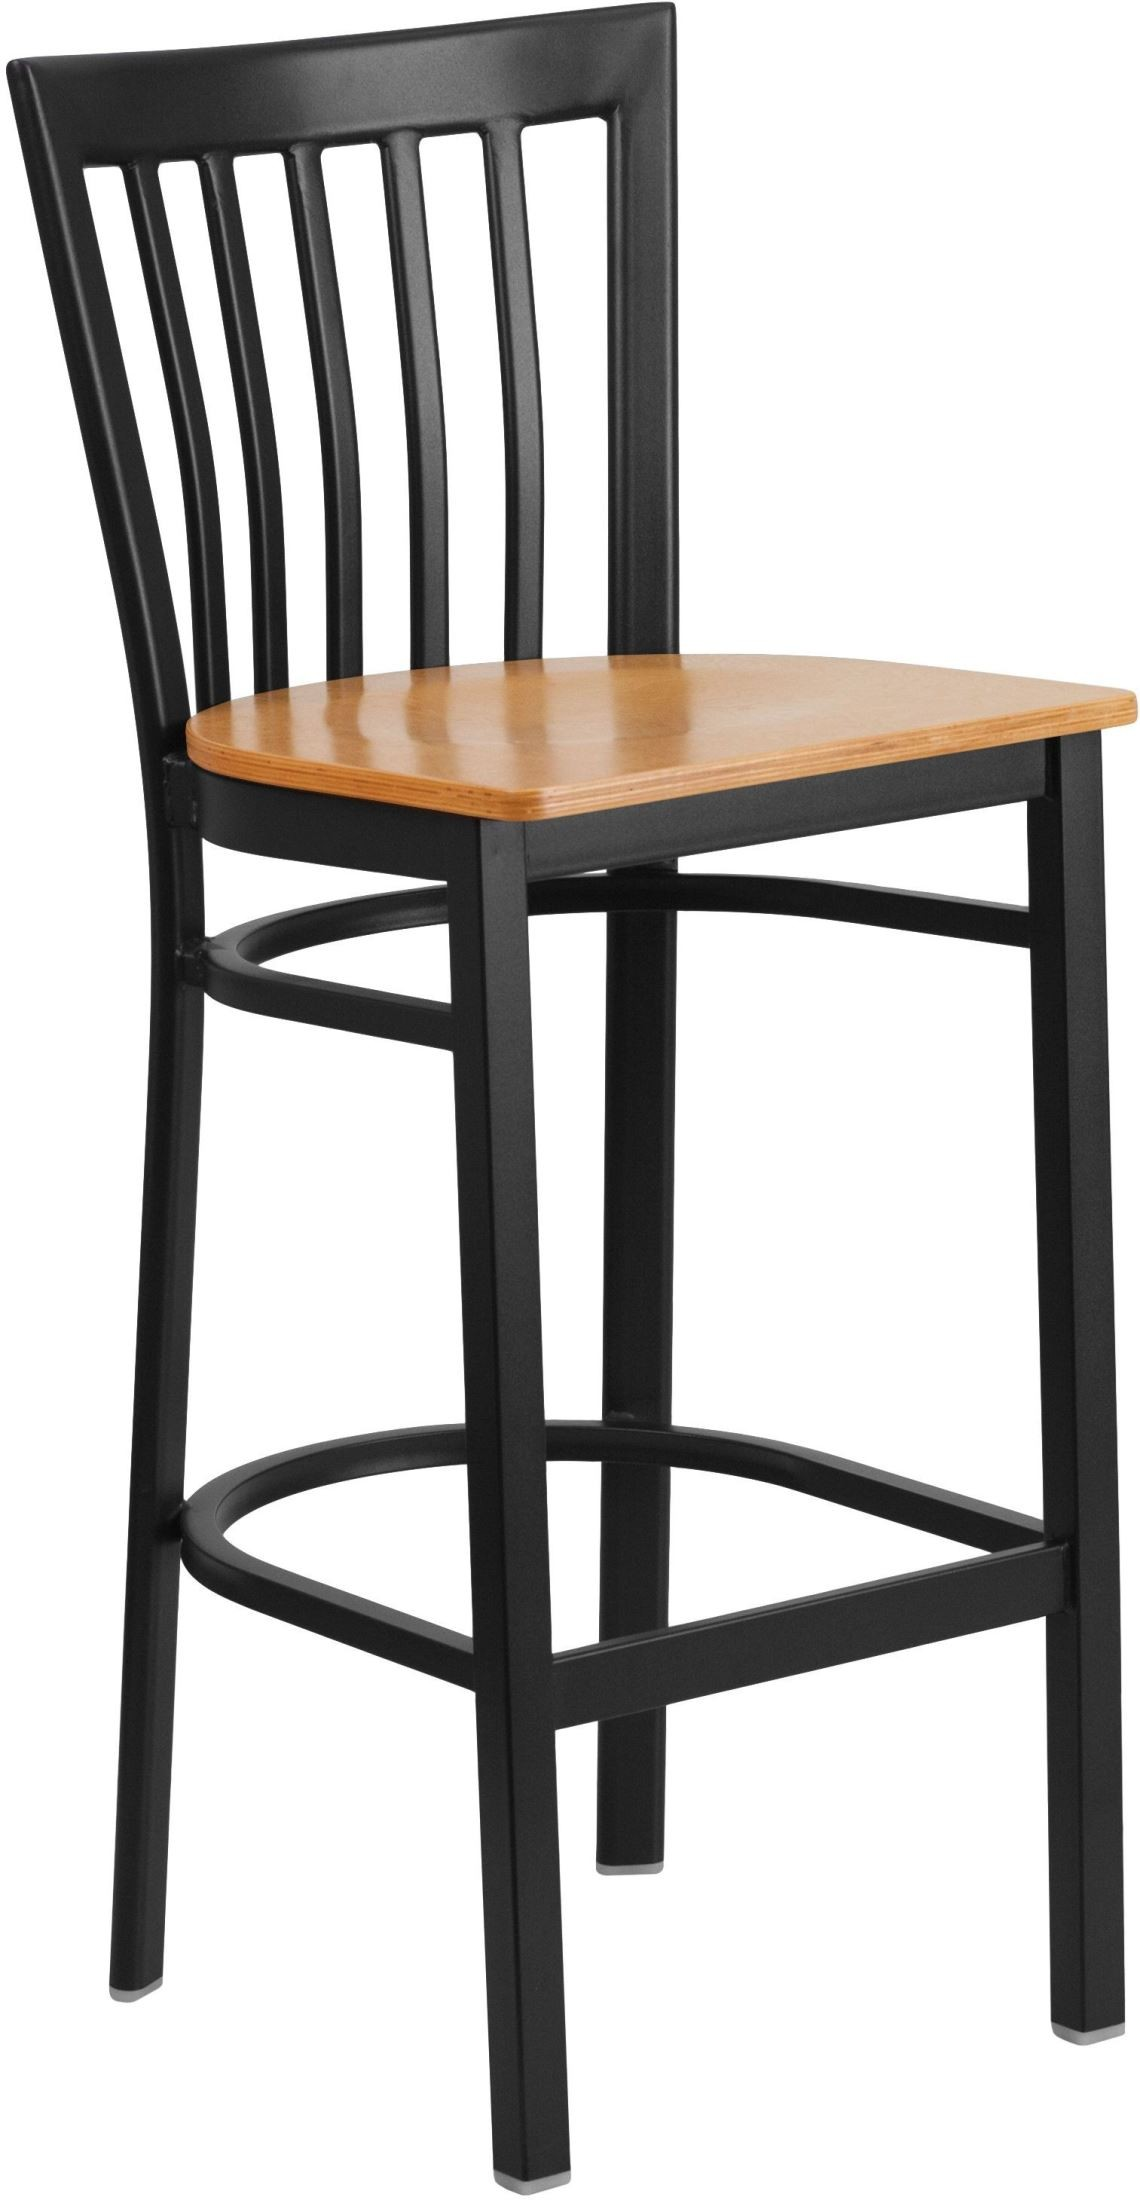 HERCULES Series Black School House Back Natural Wood Seat  : xu dg6r8bsch bar natw gg from colemanfurniture.com size 1140 x 2200 jpeg 194kB